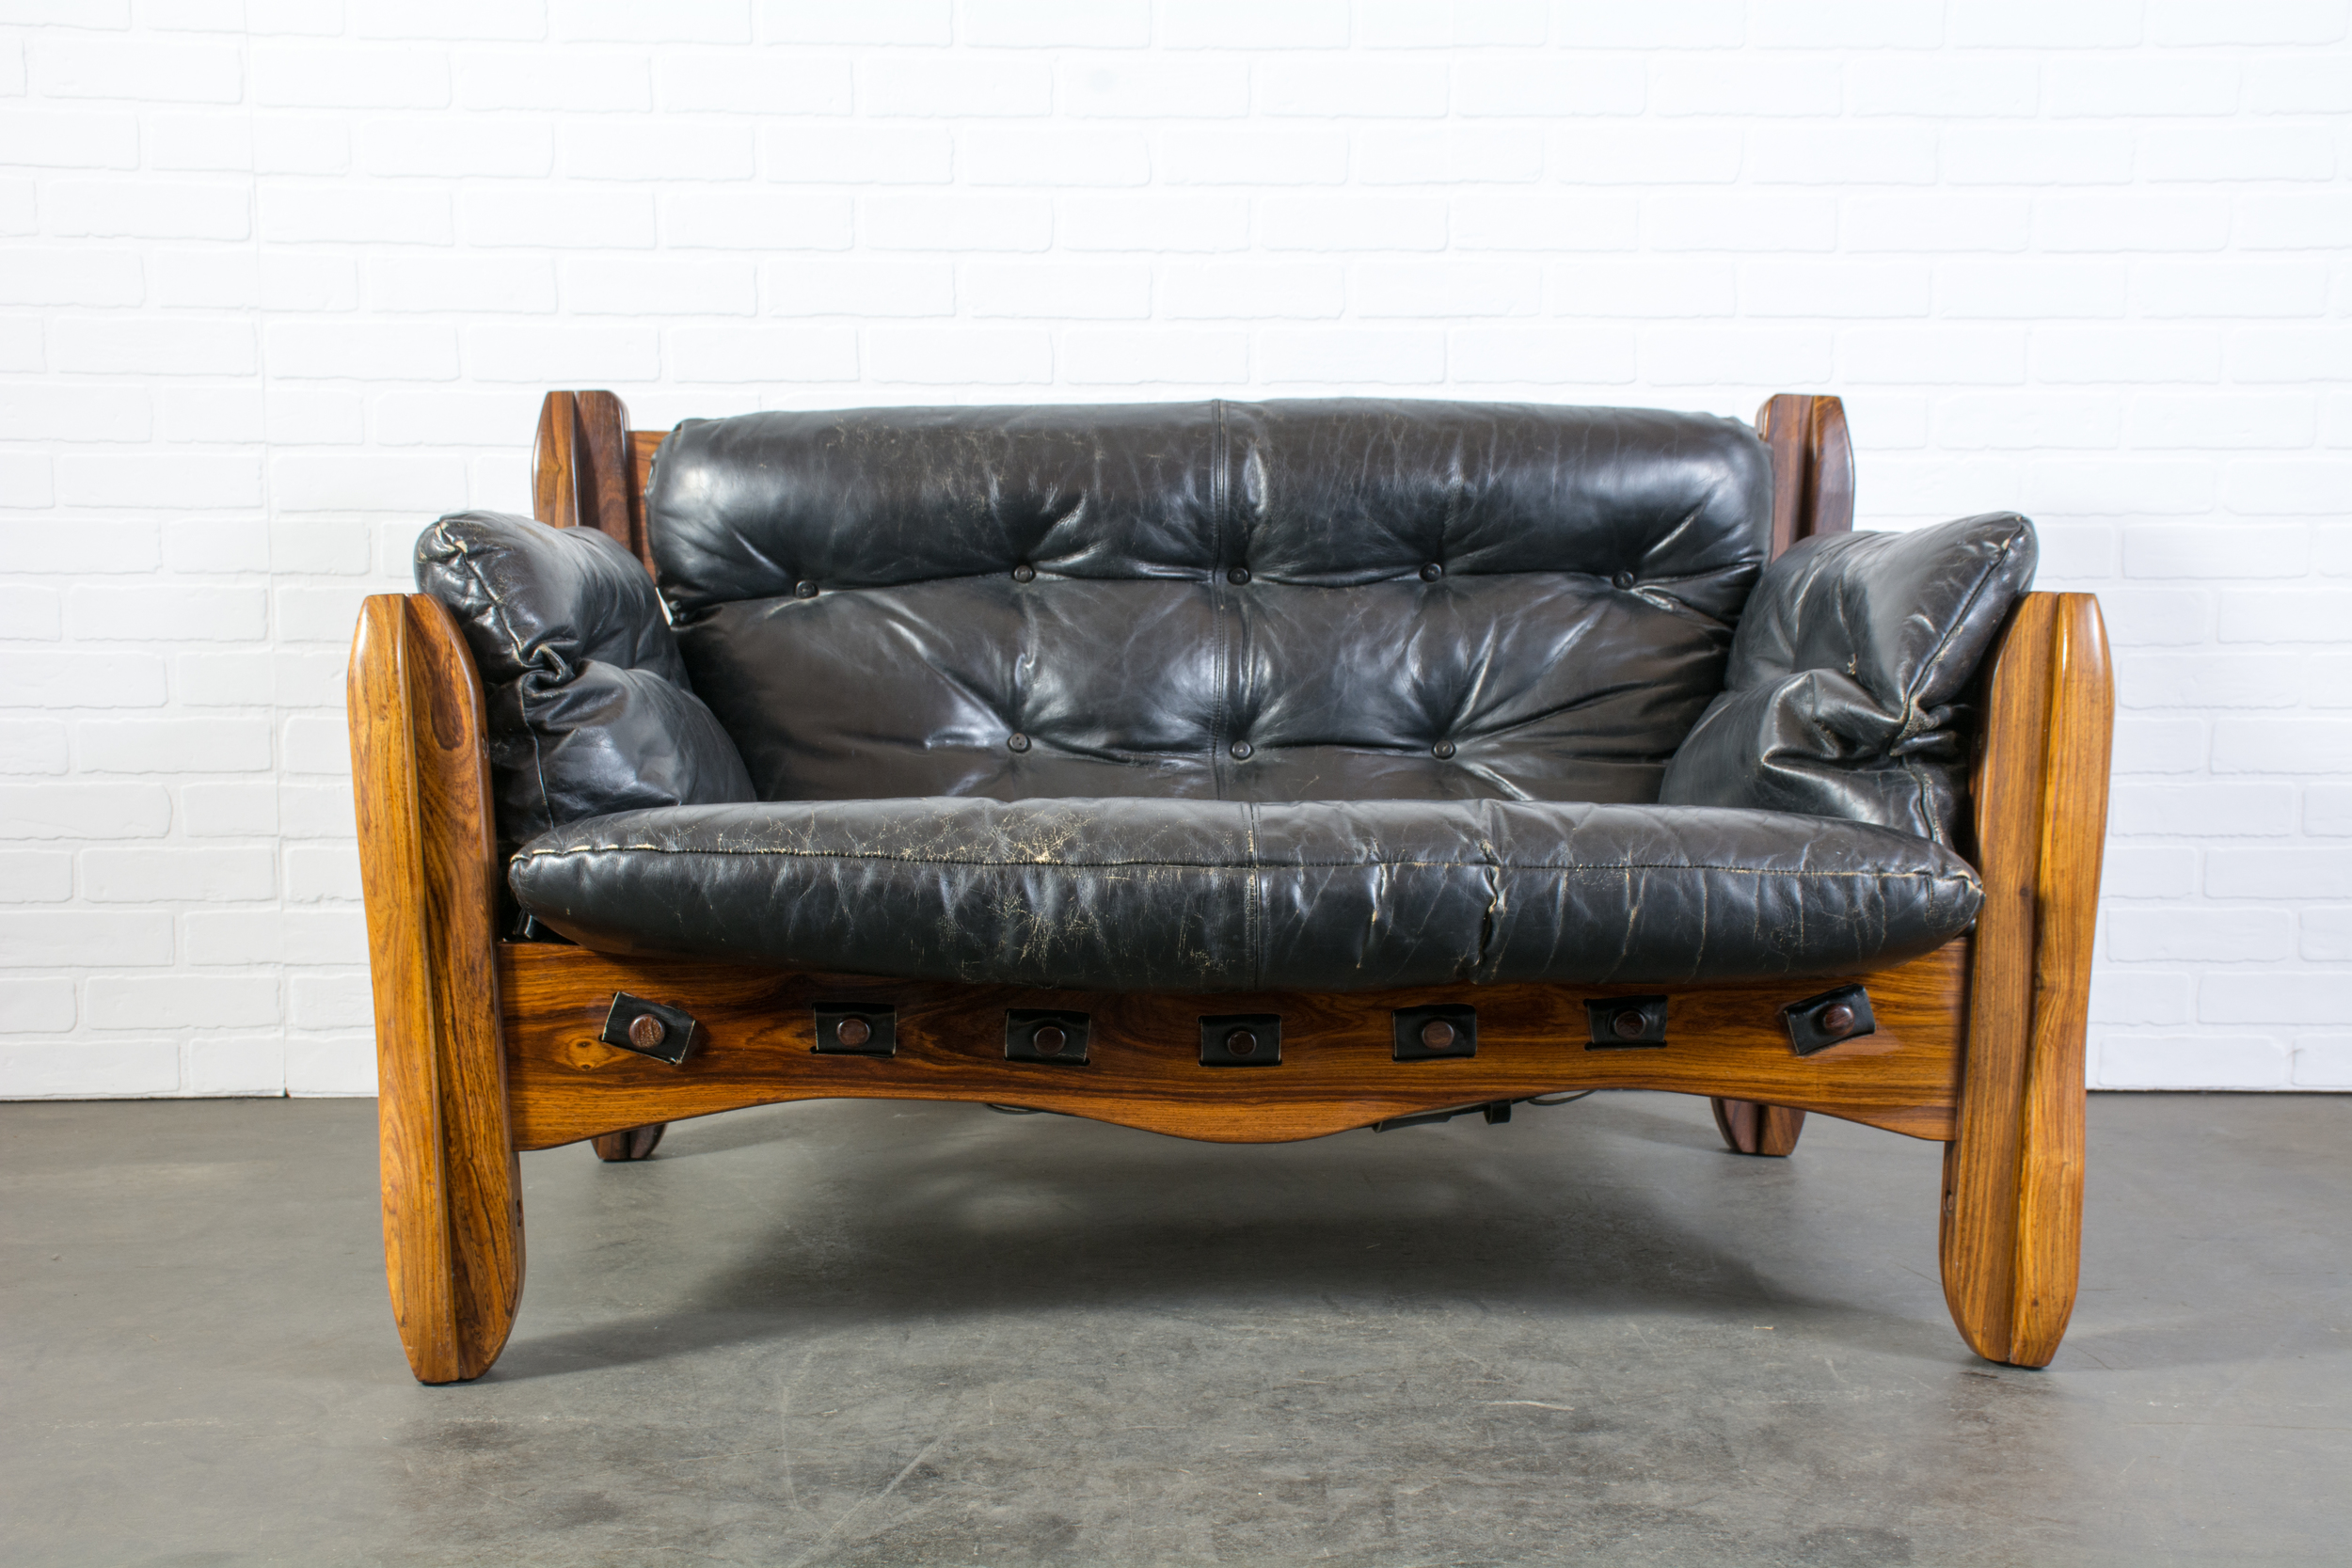 Rare Descanso Loveseat Sofa by Don Shoemaker